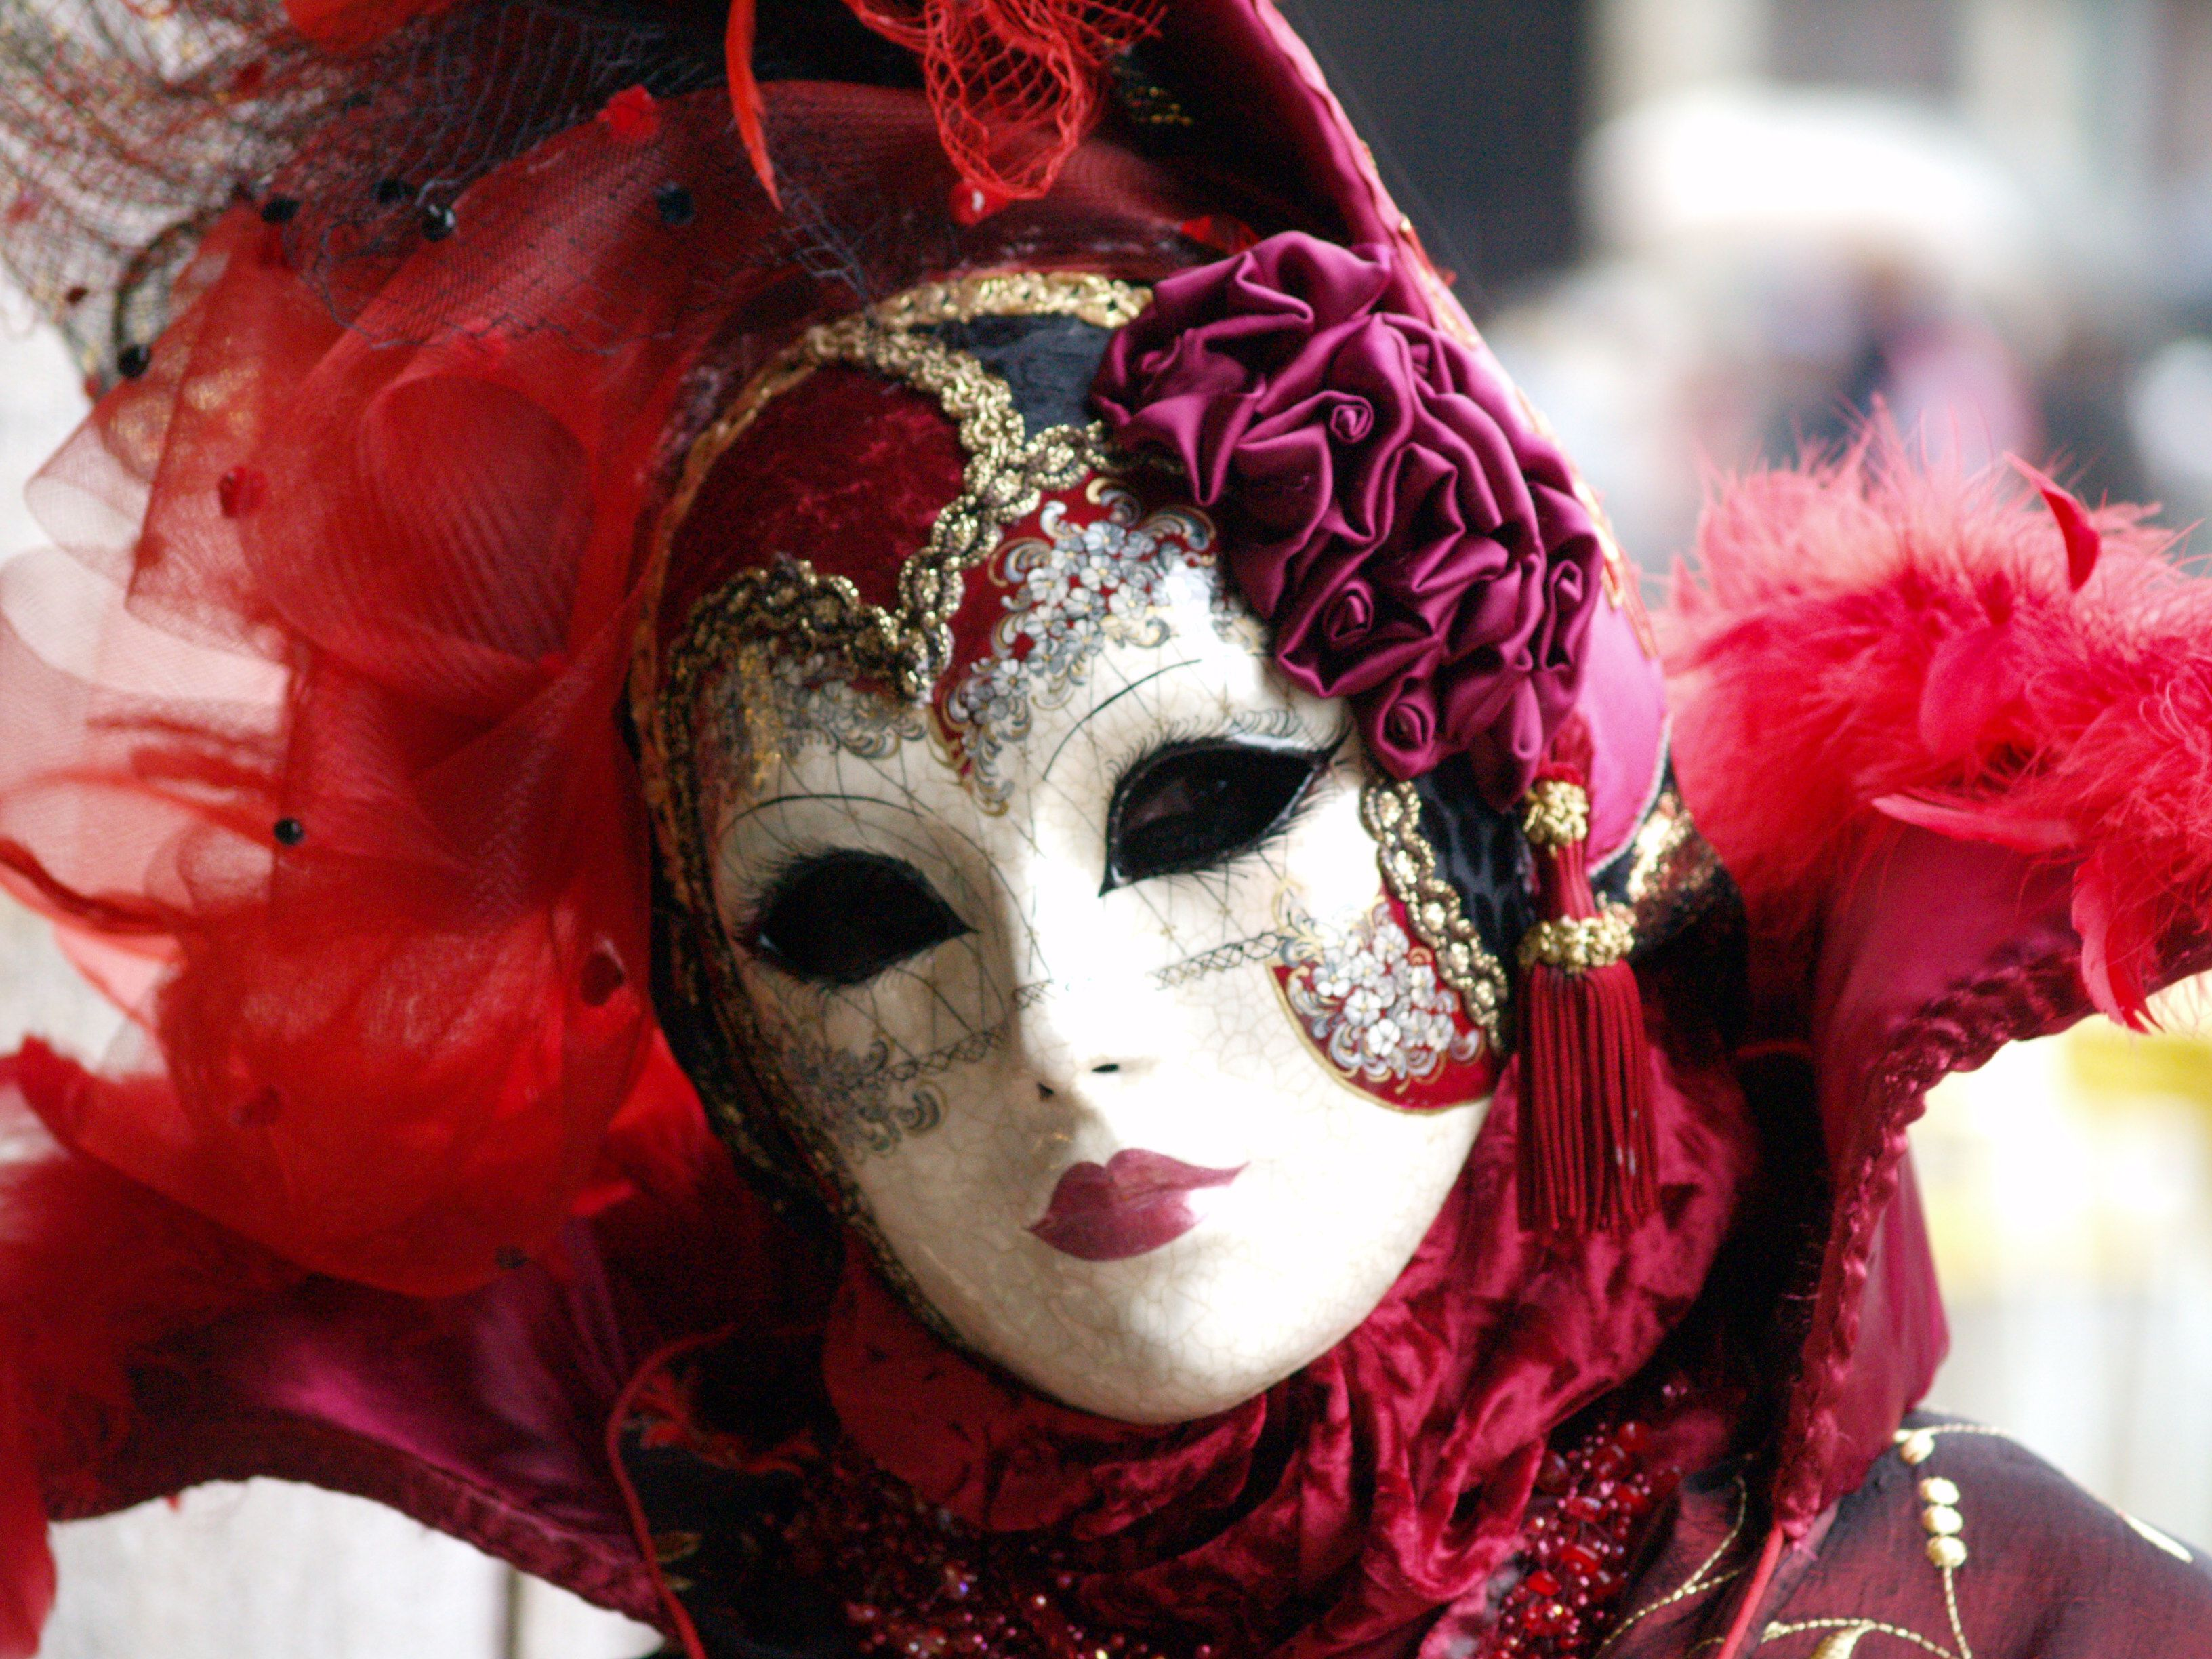 Uncategorized The Carnival Of Venice traditional venetian masks worn at the carnival of venice in italy description from